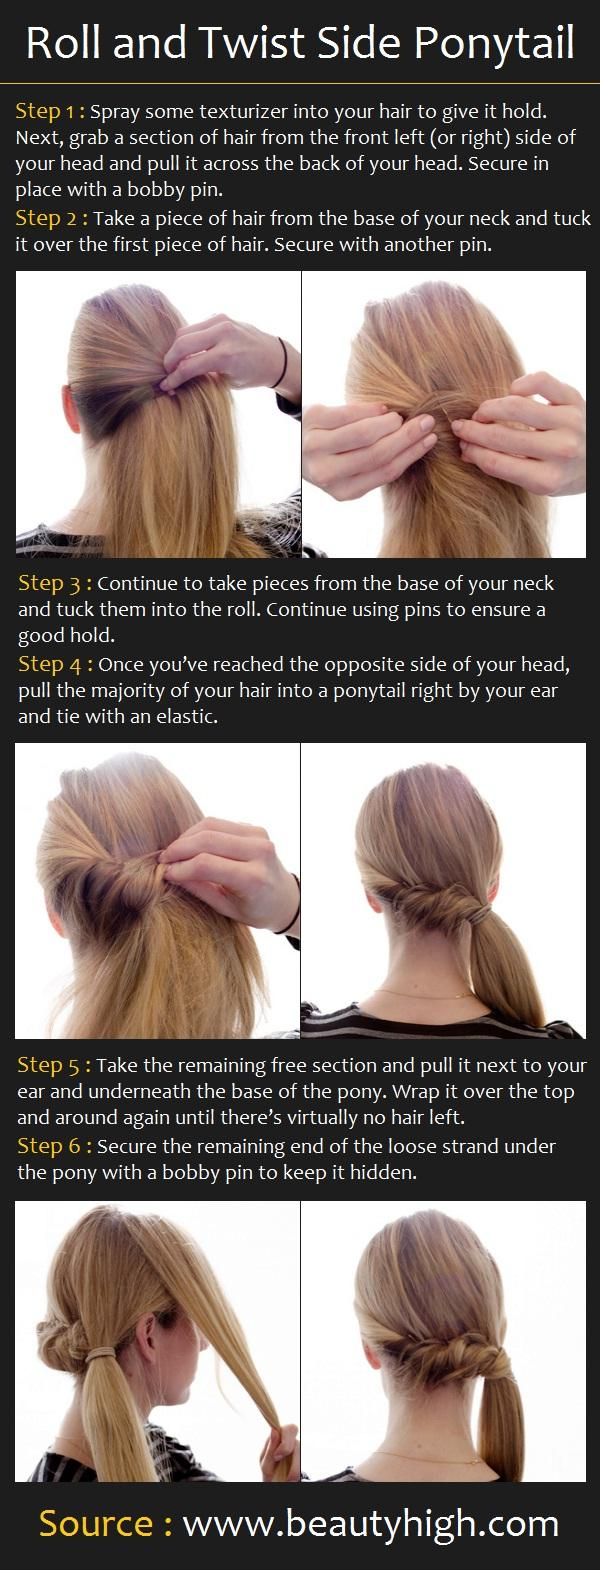 Roll and Twist Side Ponytail